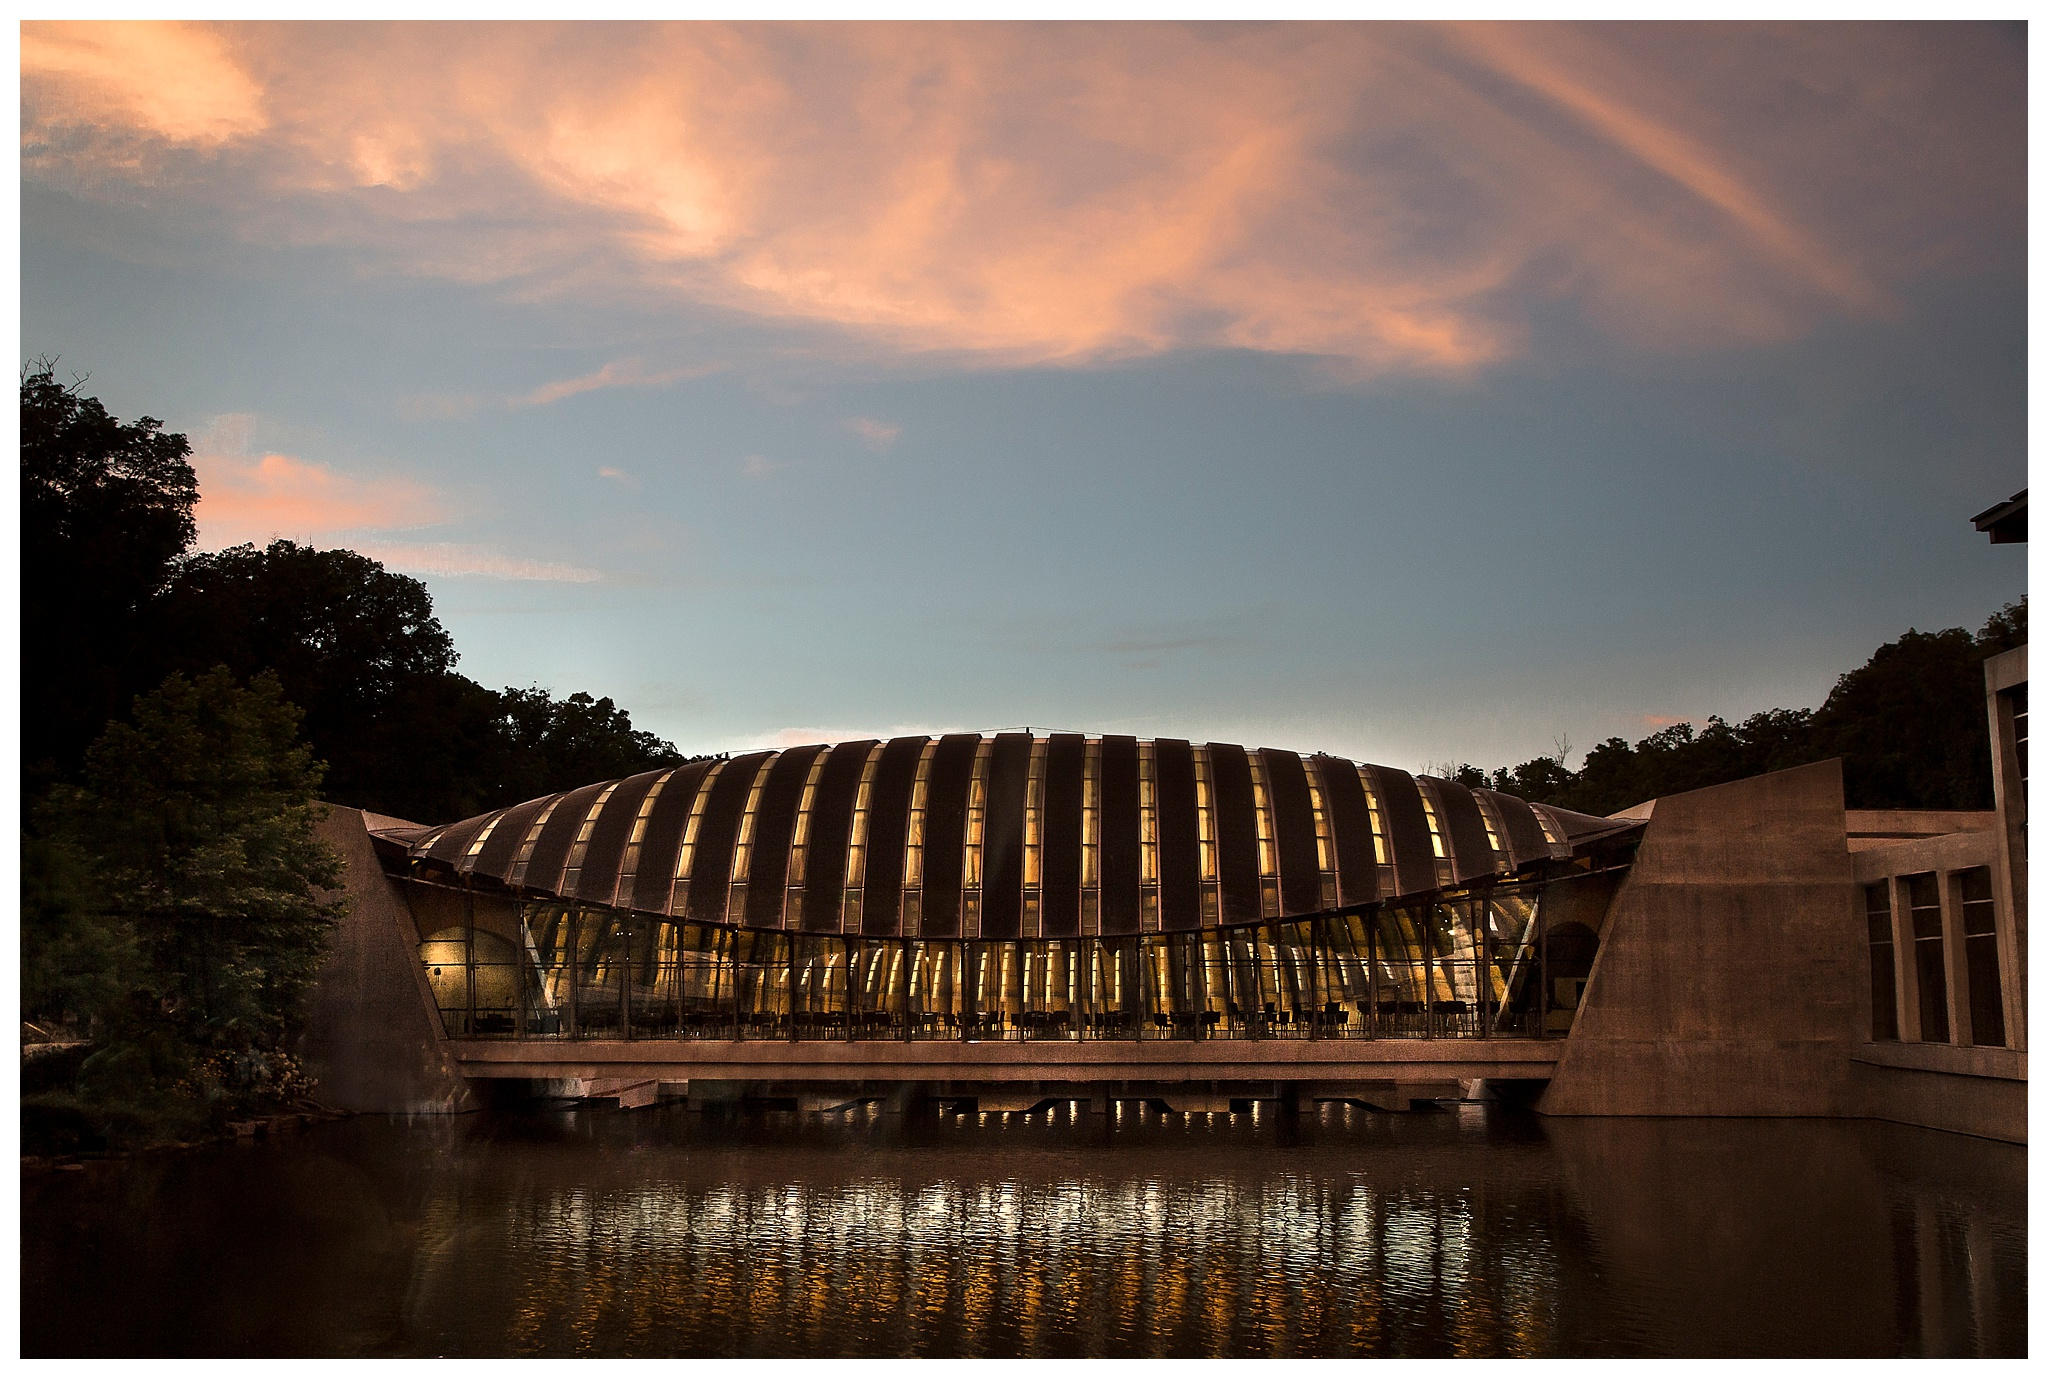 EB_CrystalBridges80.jpg